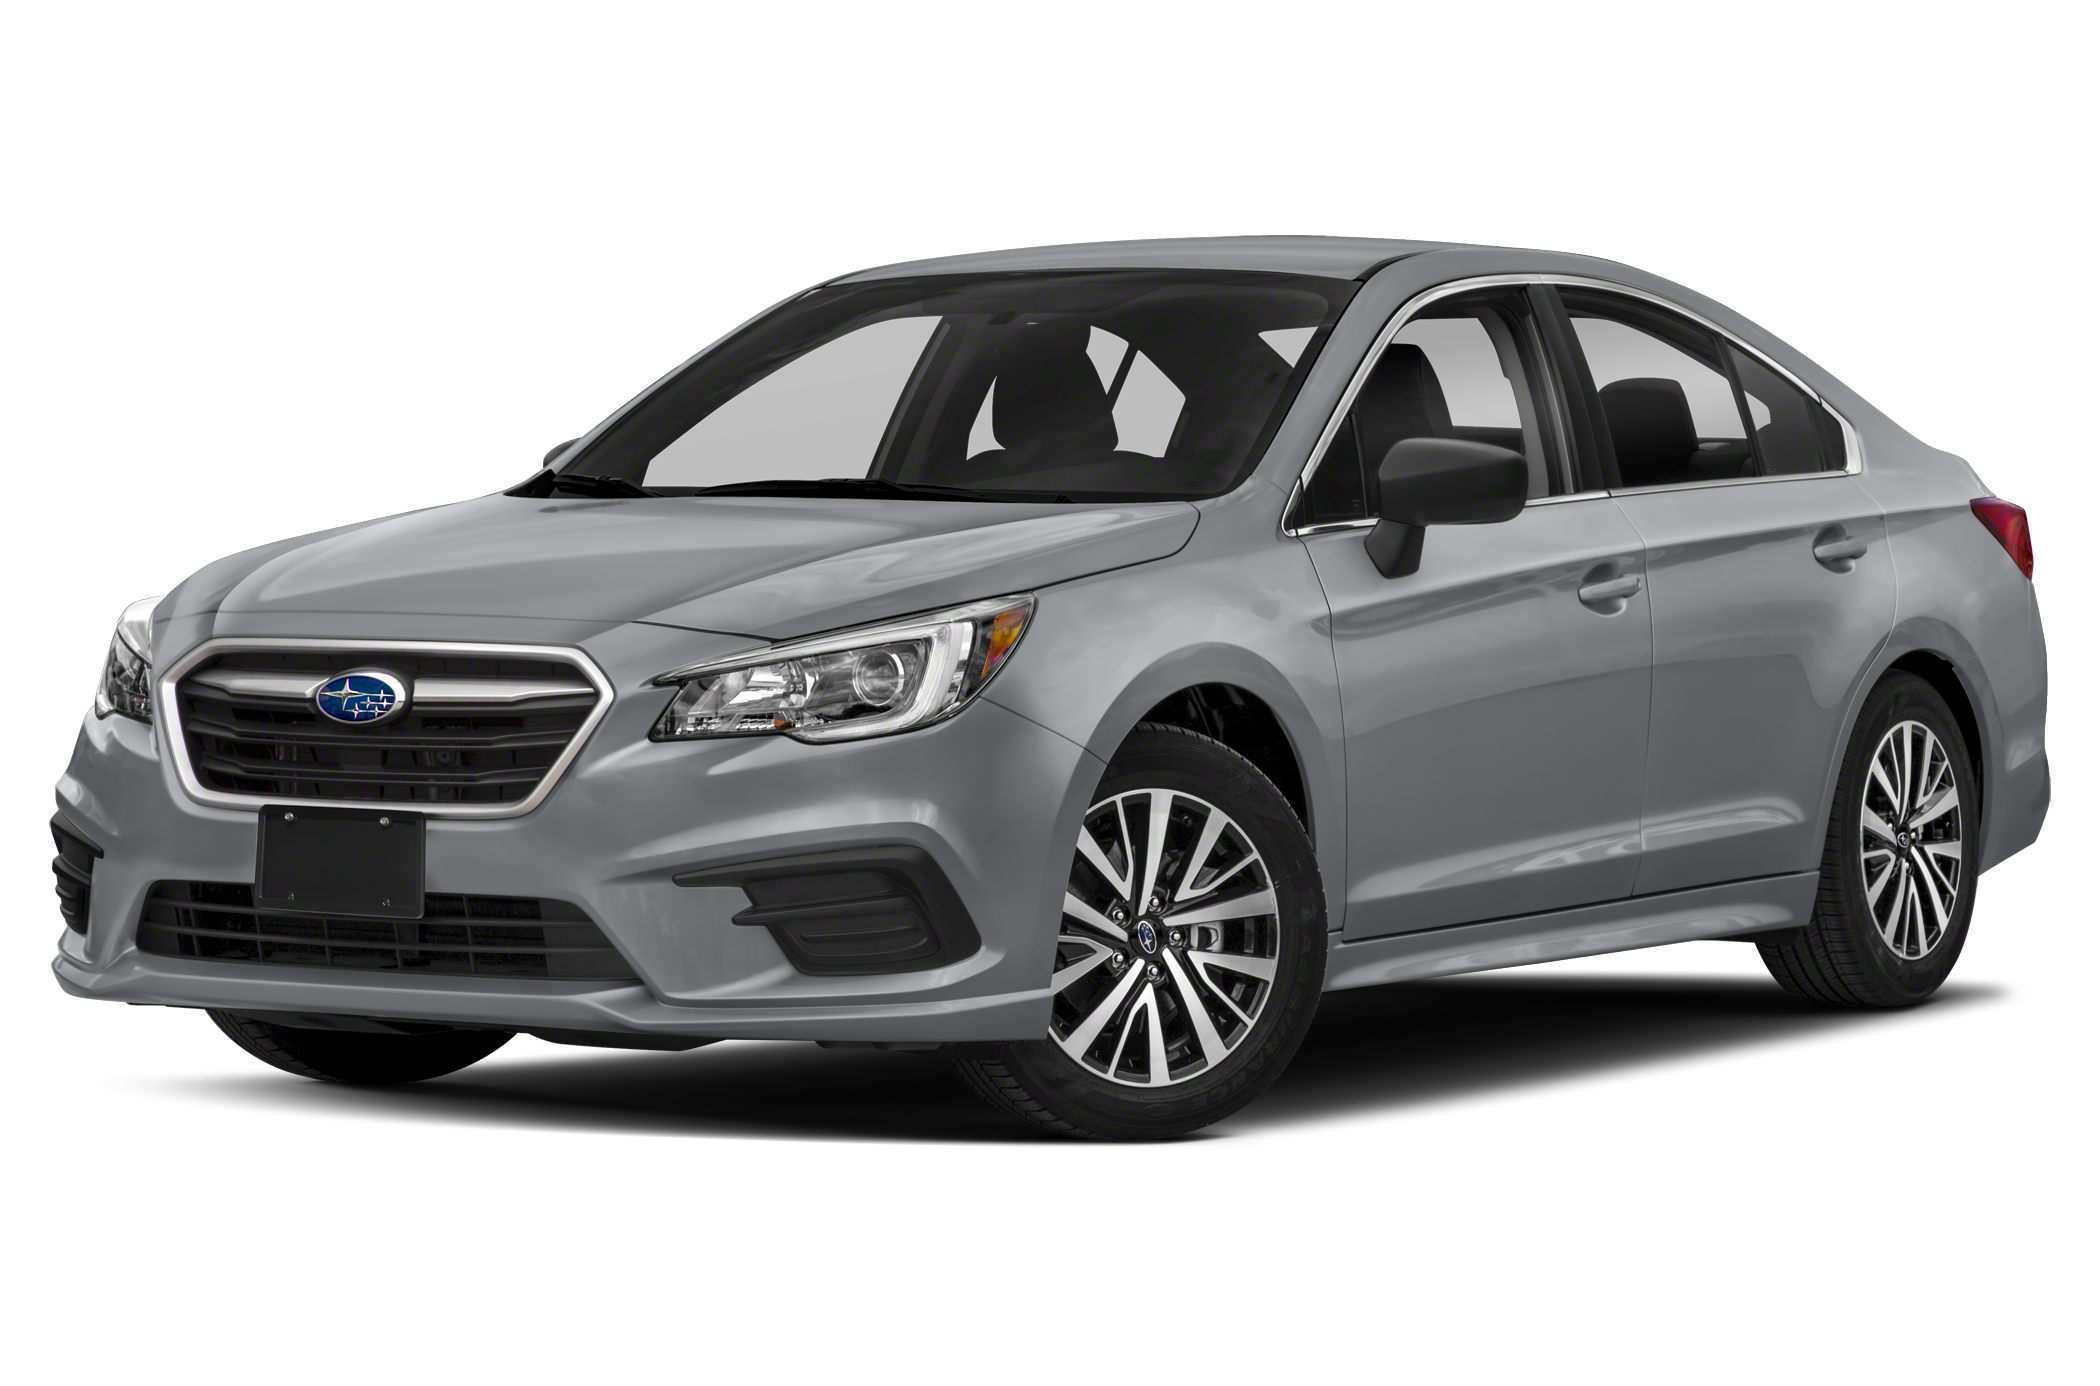 41 New Subaru Legacy Gt 2019 Photos